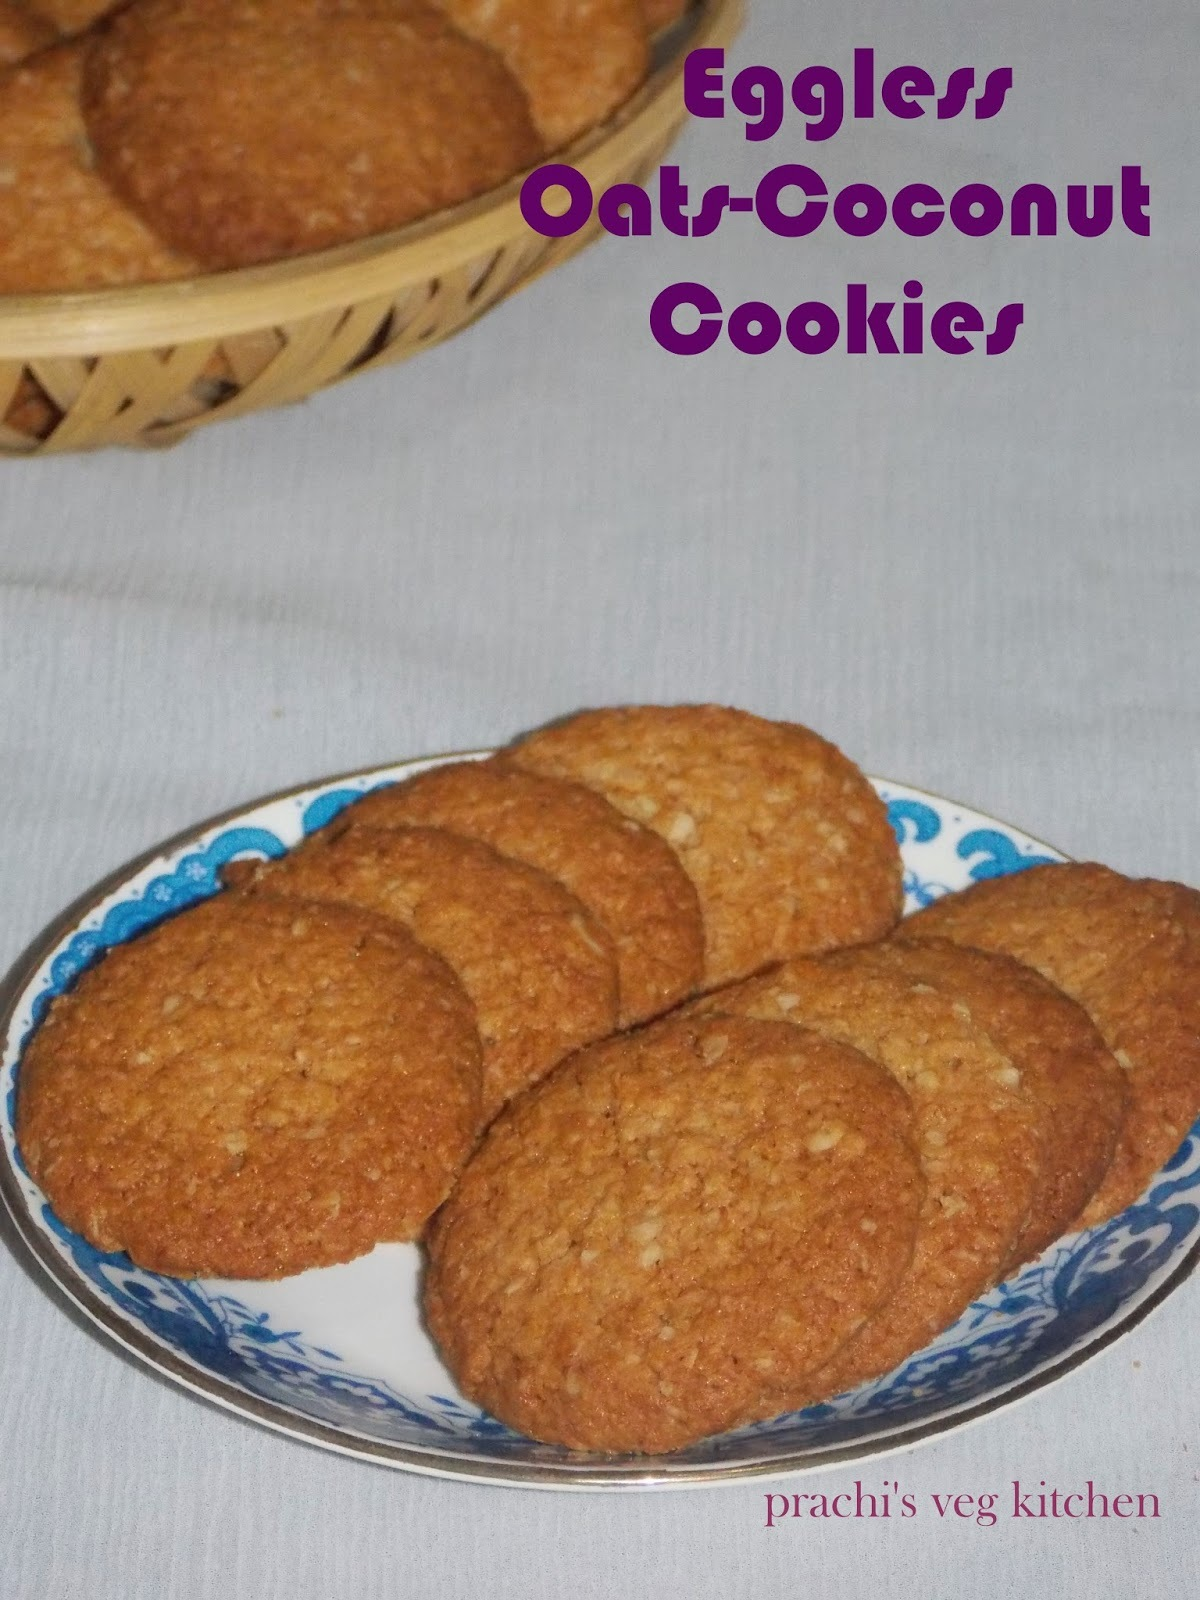 Eggless Oats-Coconut Cookies